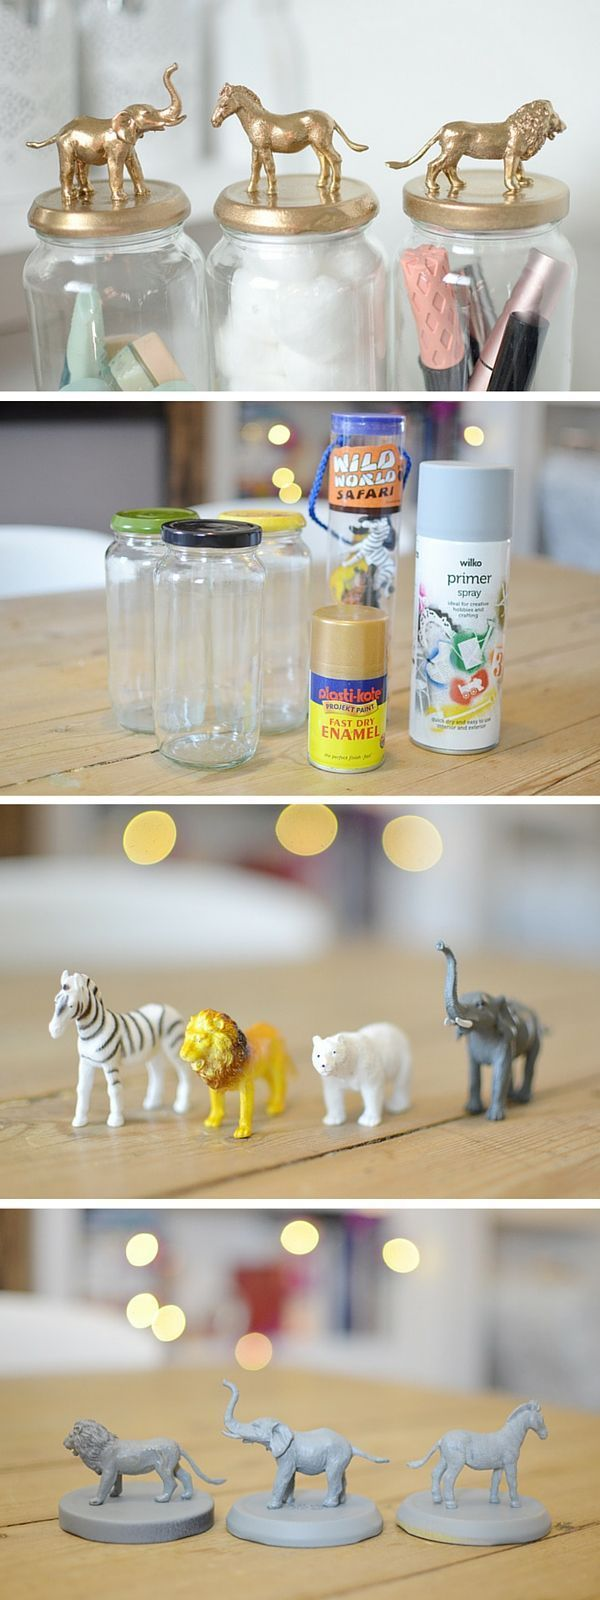 10 Brilliant DIY Home Decor Ideas To